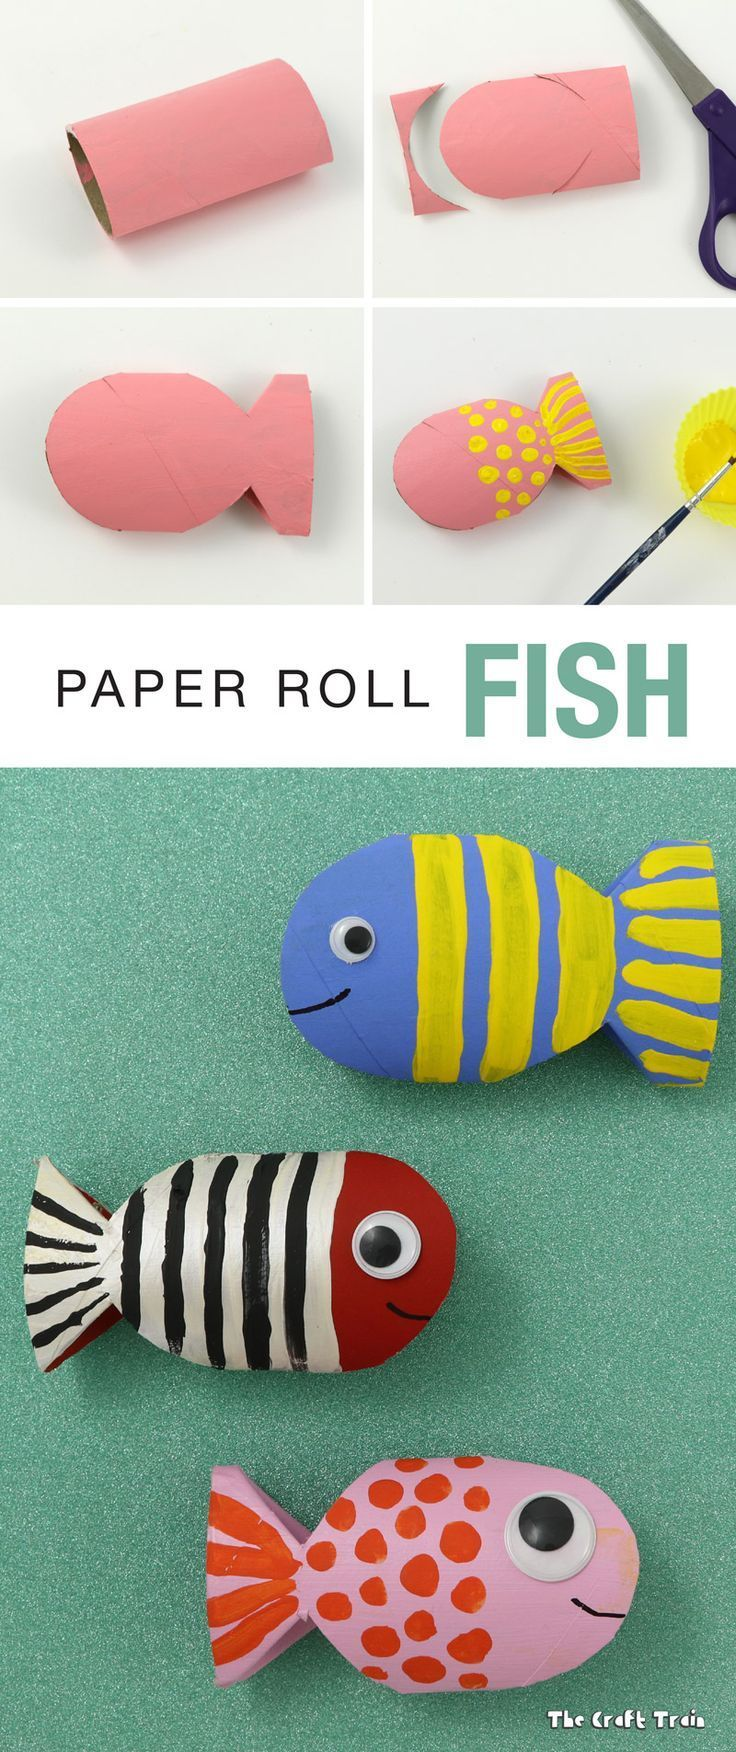 Cutest fish in the sea! Make these adorable paper roll fish with preschool and kindergarten. A great way to let kids use their imagination and create new fish!